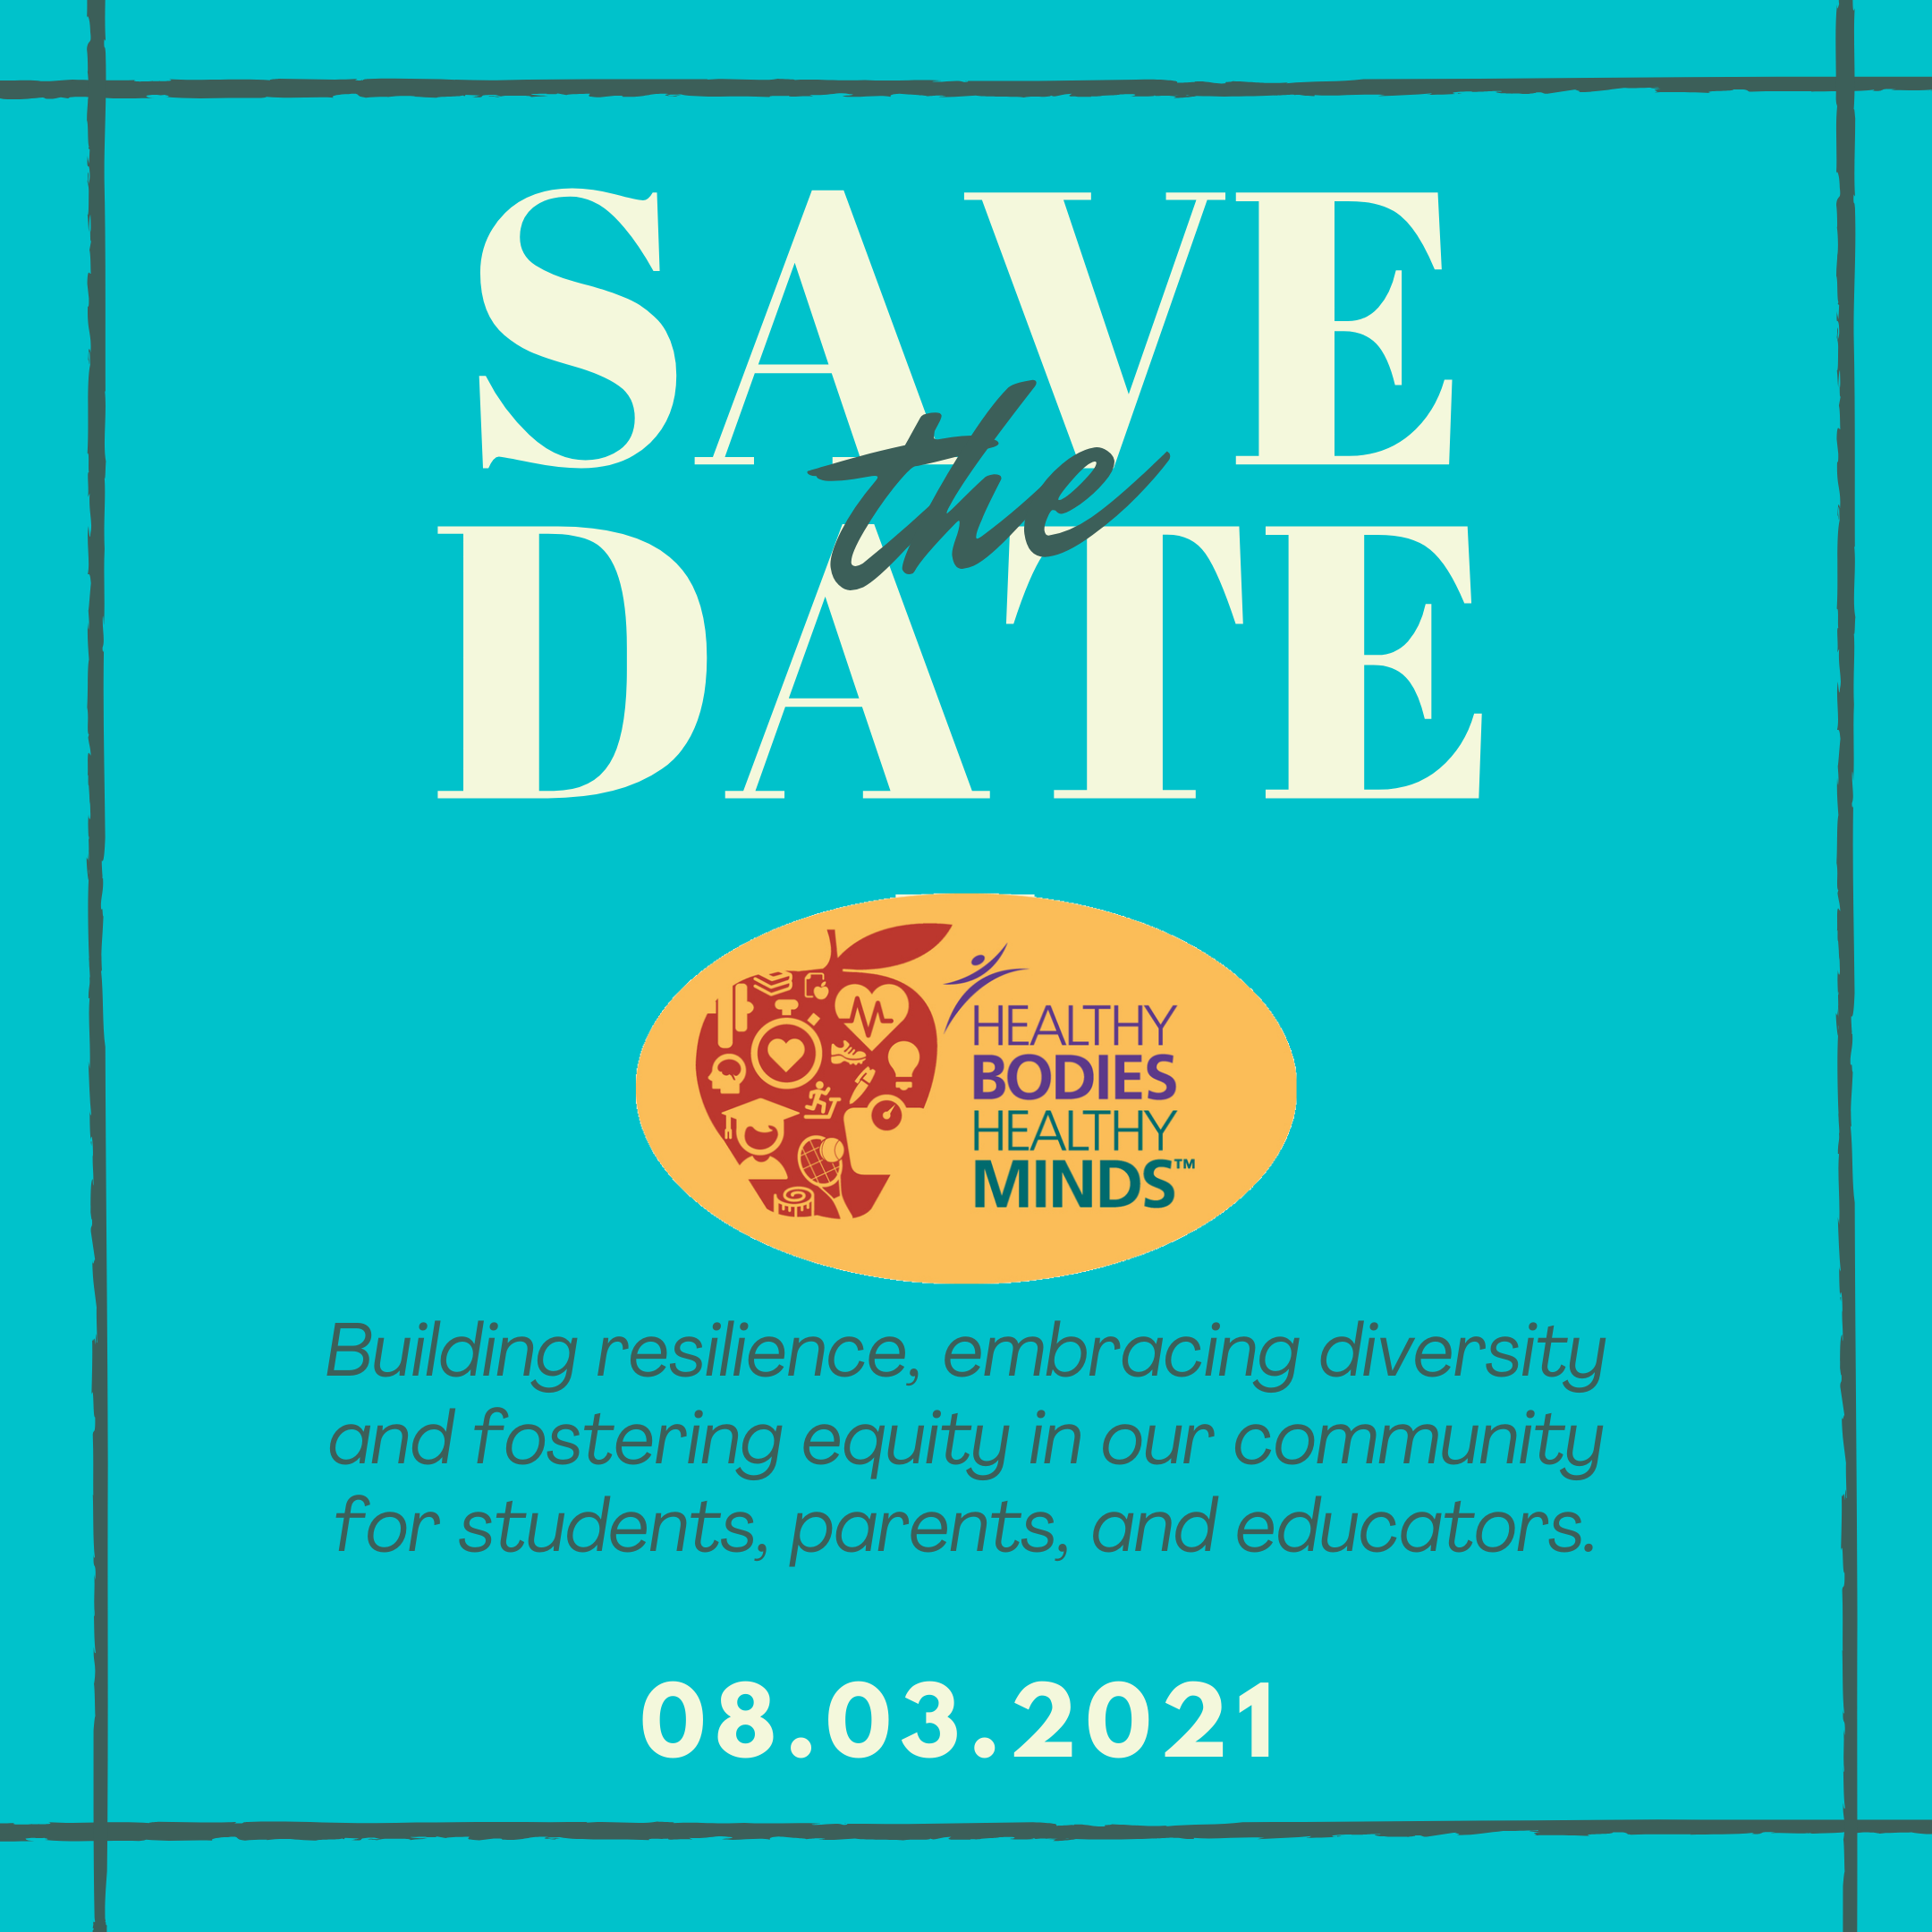 Save the Date! The 2021 conference is scheduled for August 3 and will focus on building resilience, embracing diversity, and fostering equity in our community for students, parents, and educators.